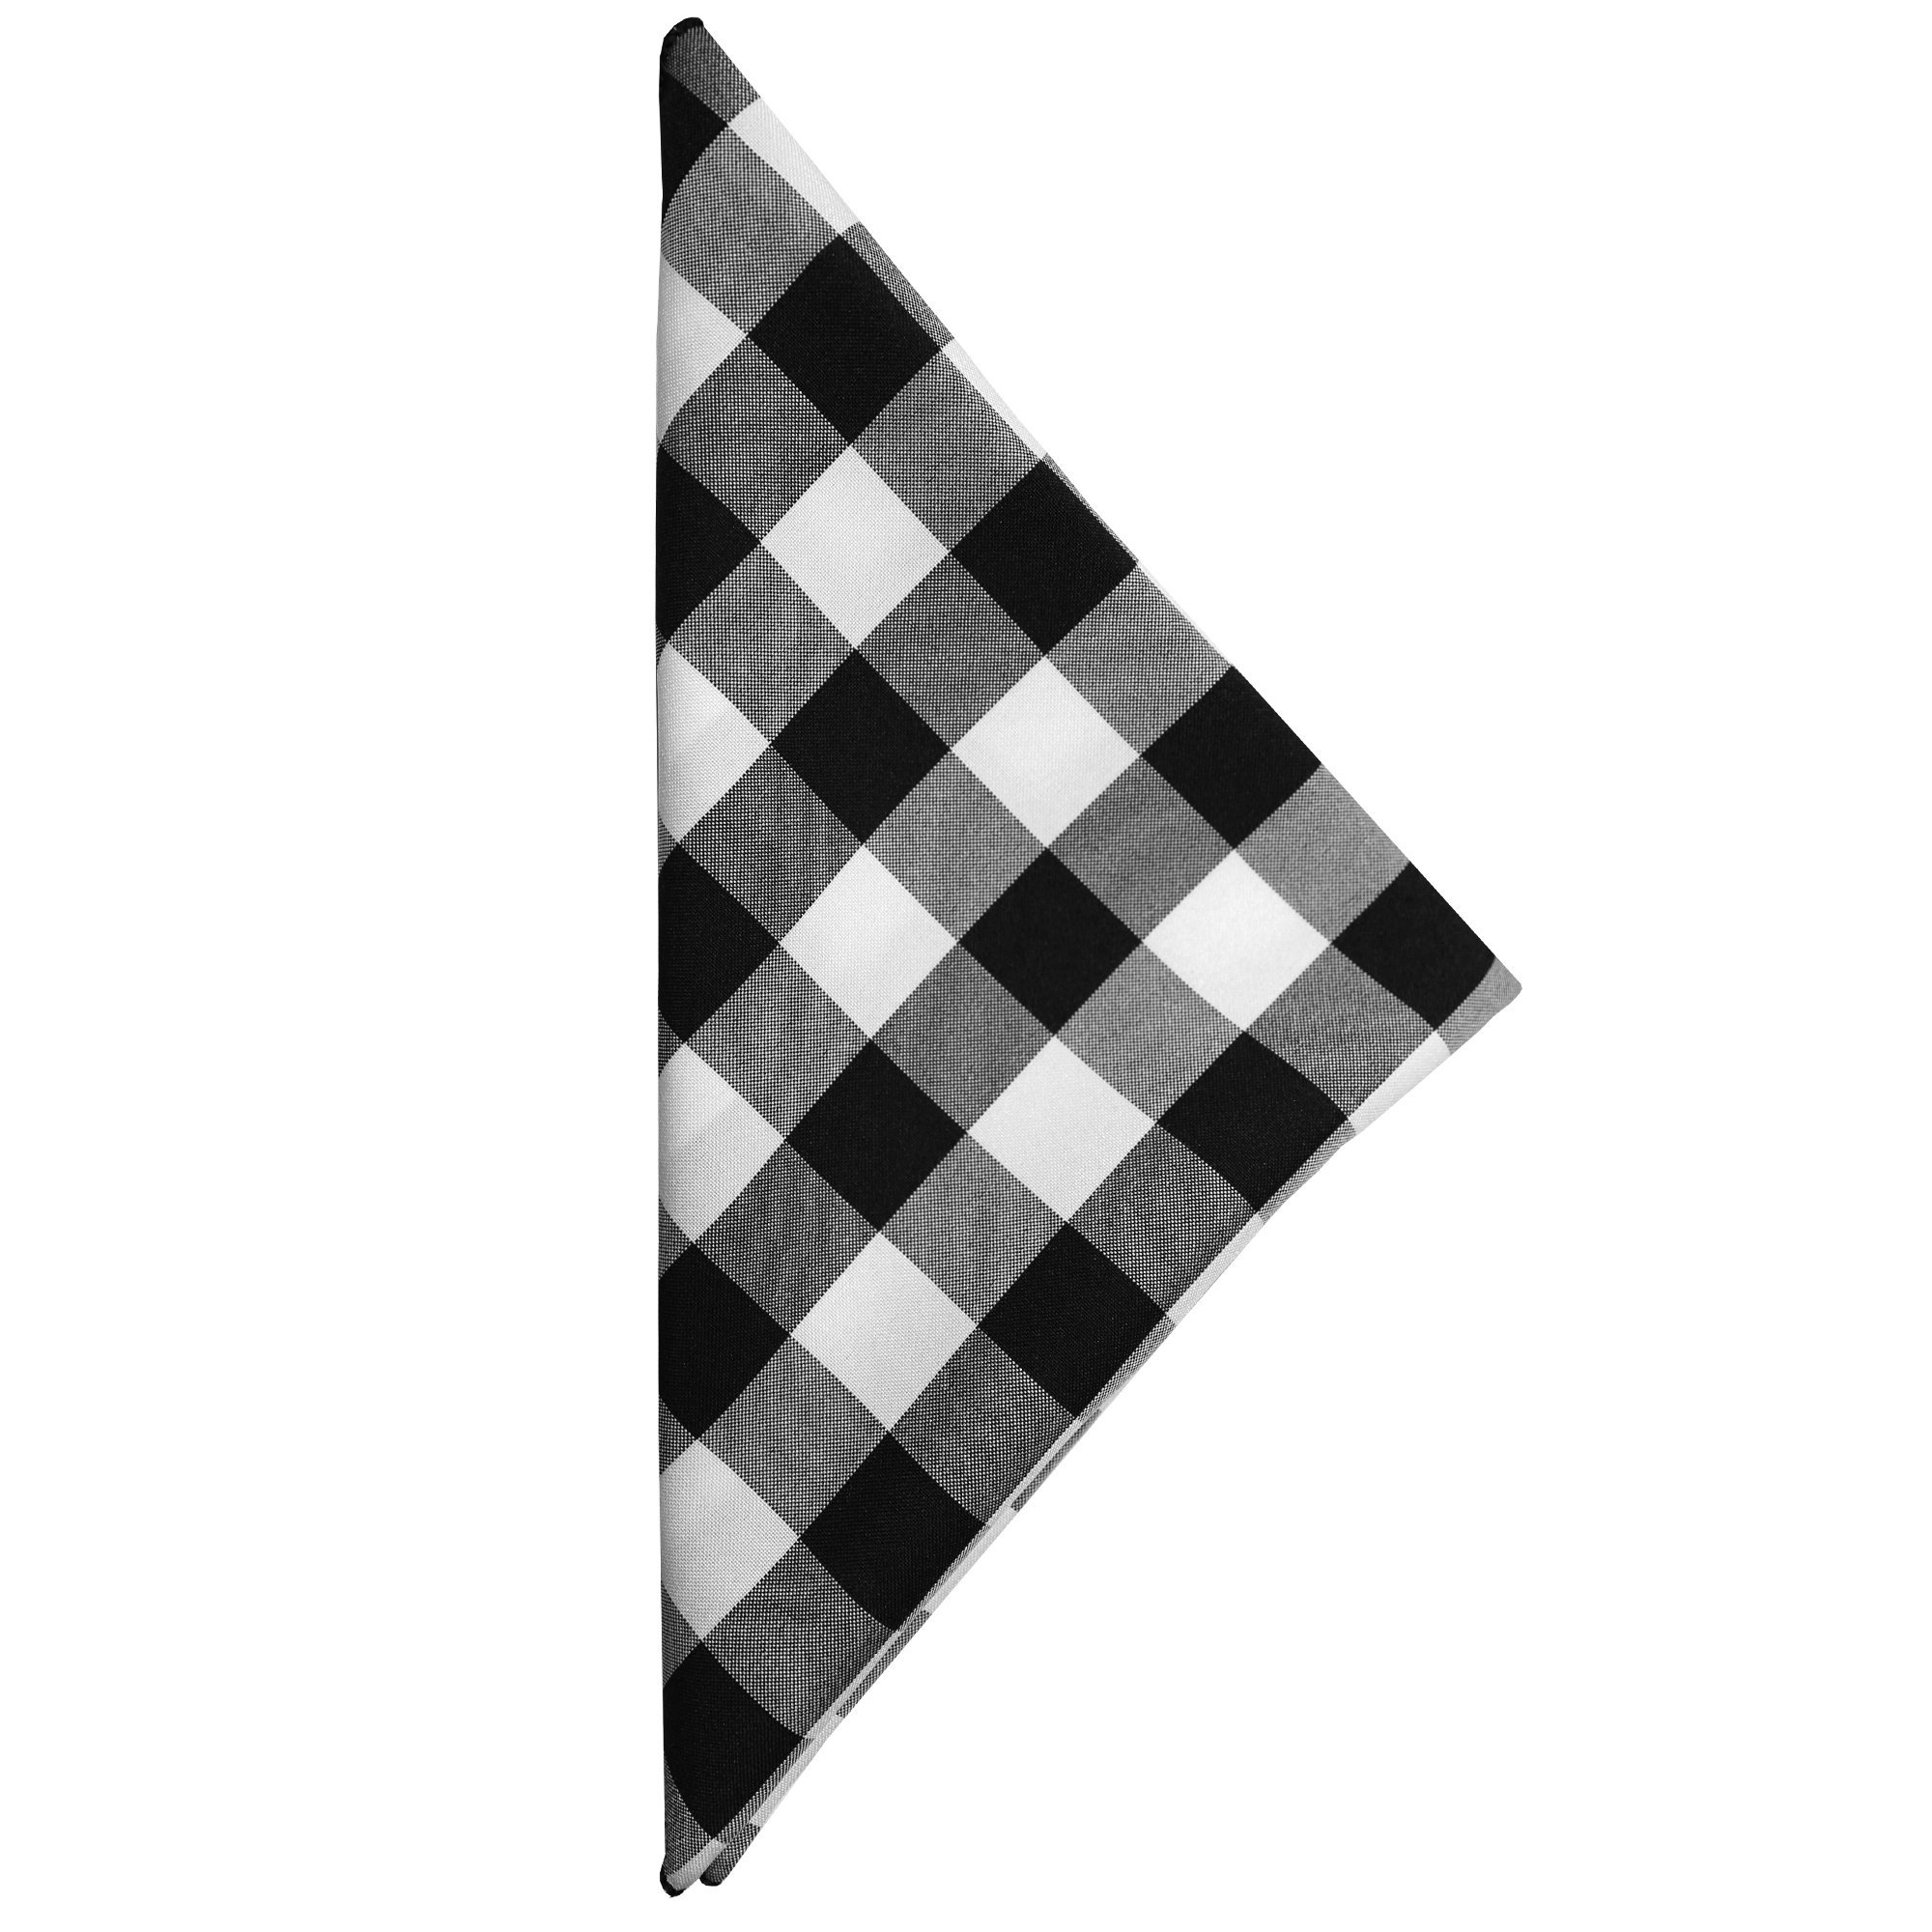 Ultimate Textile -1 Dozen- 10 x 10-Inch Polyester Checkered Cloth Cocktail Napkins Black and White